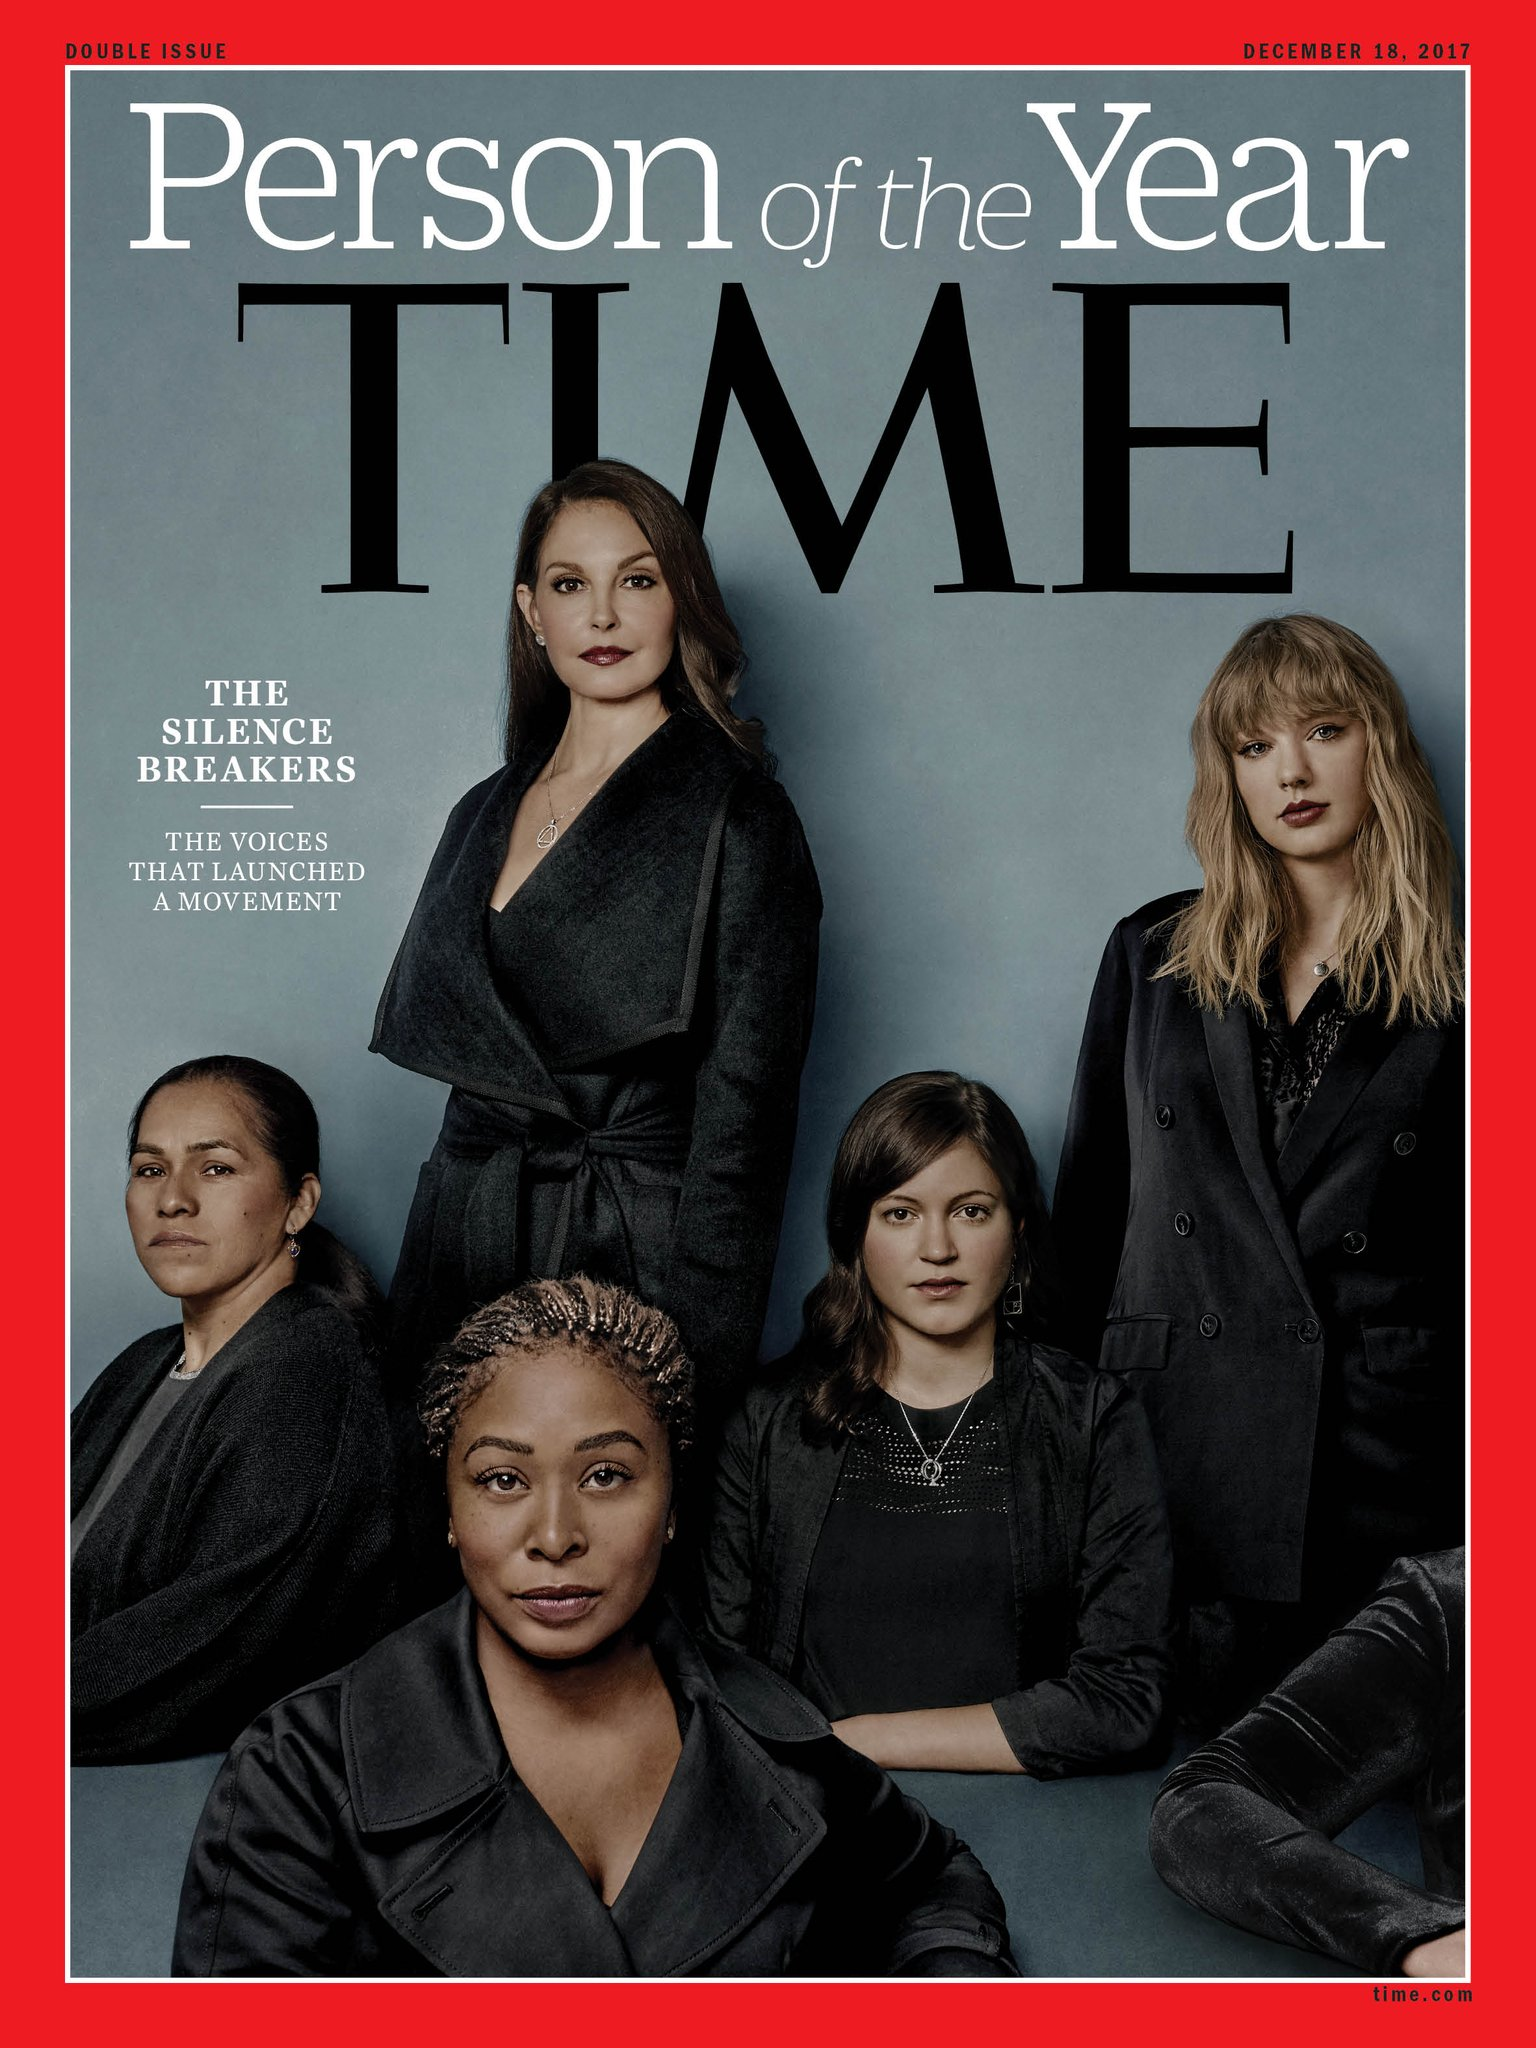 .@TIME's 2017 Person of the Year: The Silence Breakers https://t.co/7cYyxgpU5U https://t.co/lL1PH4STcS